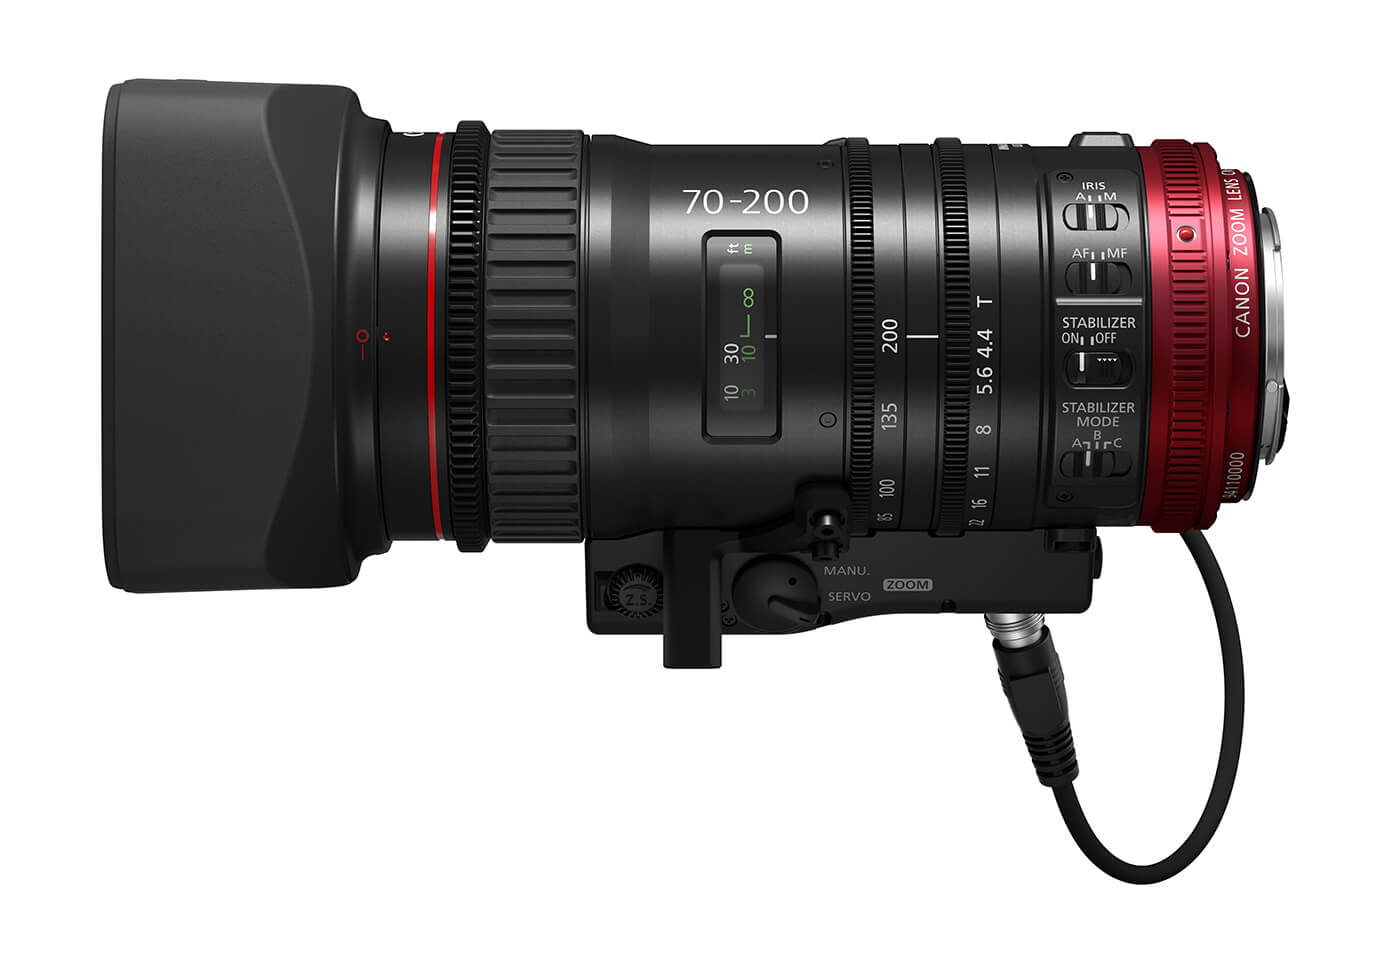 Product image of Canon CN E70-200mm T4.4 cinema lens